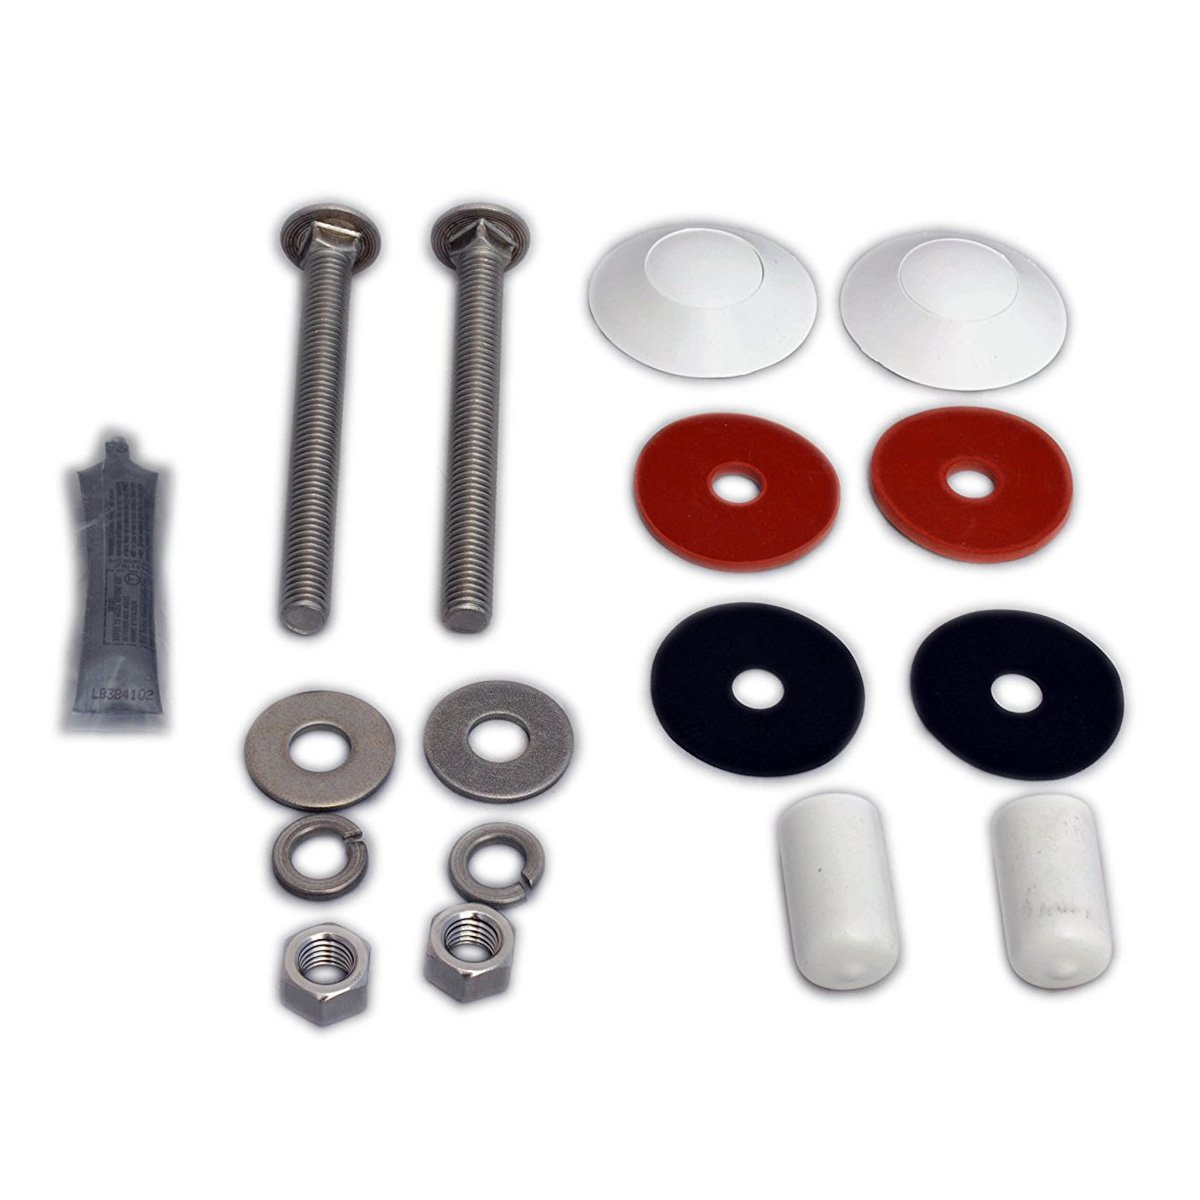 Inter-Fab Board to Base Stainless Steel Hardware Kit, Residential Diving Board